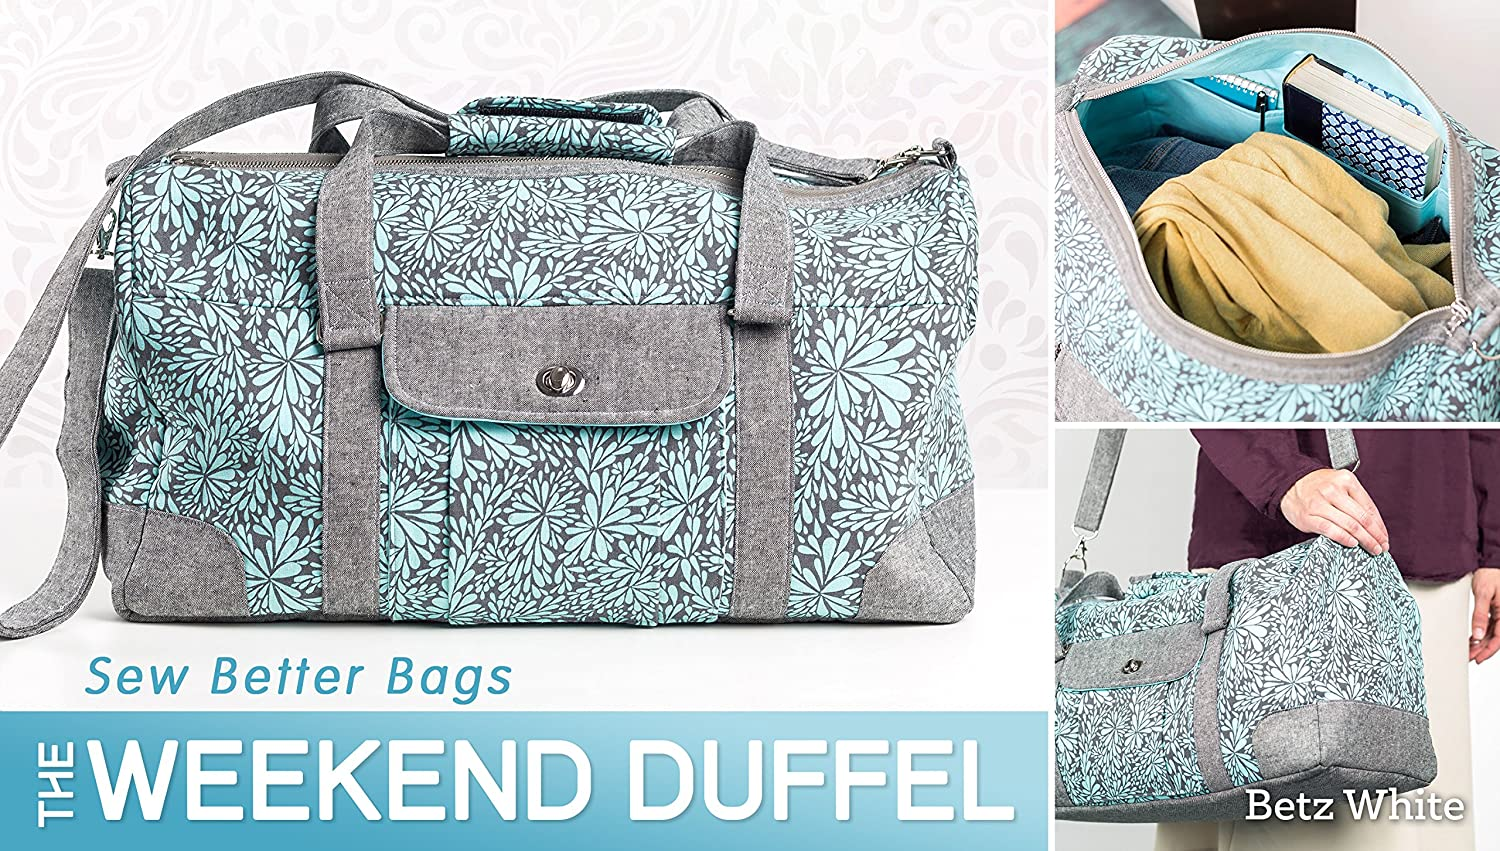 Amazon sew better bags the weekend duffel betz white amazon sew better bags the weekend duffel betz white skilled craftsmanship and a focus on earth friendly materials she is a graduate in fashion jeuxipadfo Gallery